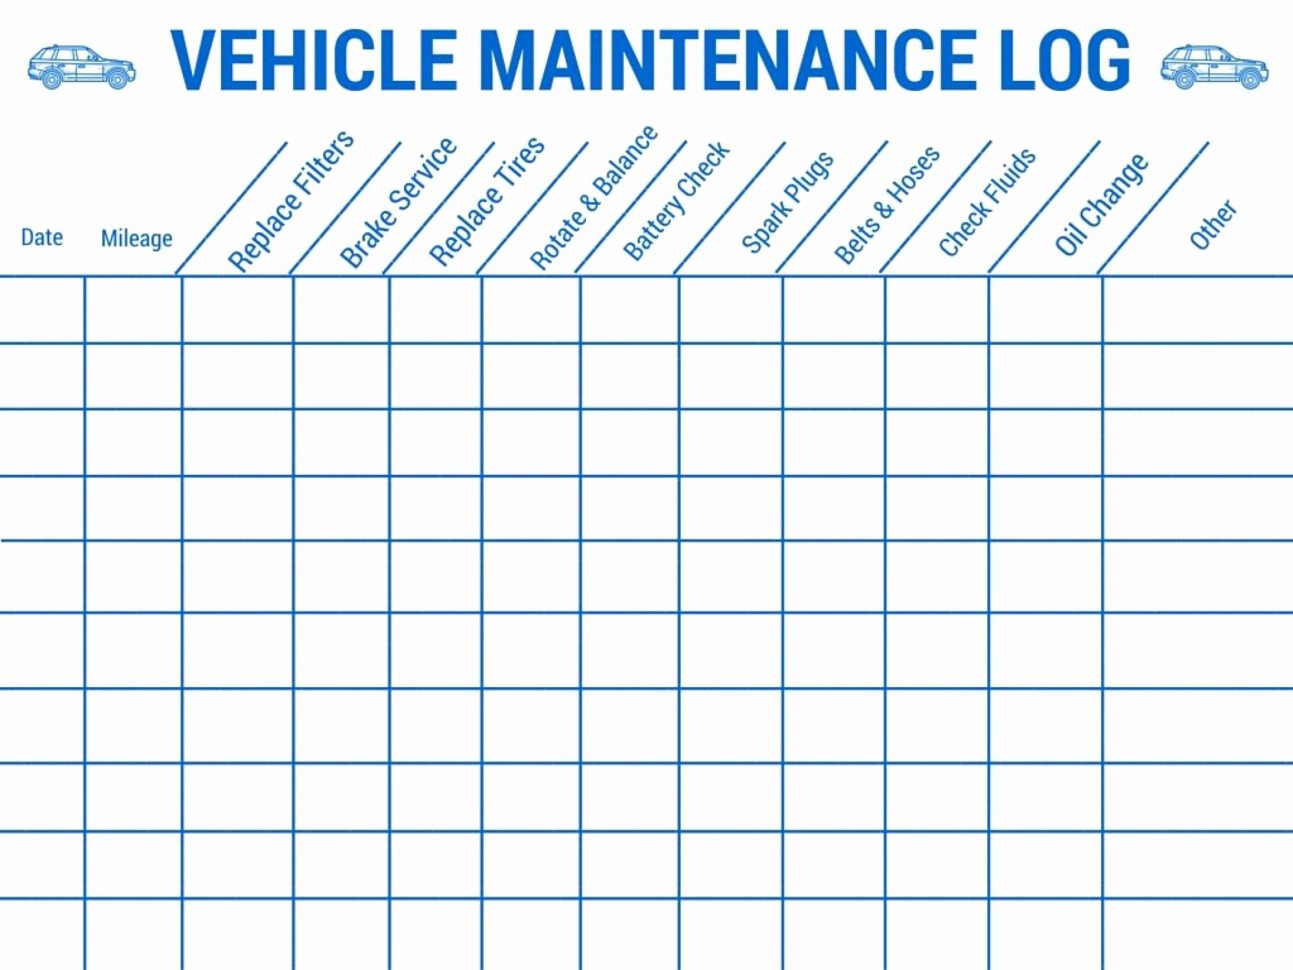 Building Maintenance Log Template Lovely Vehicle Maintenance Tracking Spreadsheet Spreadsheet